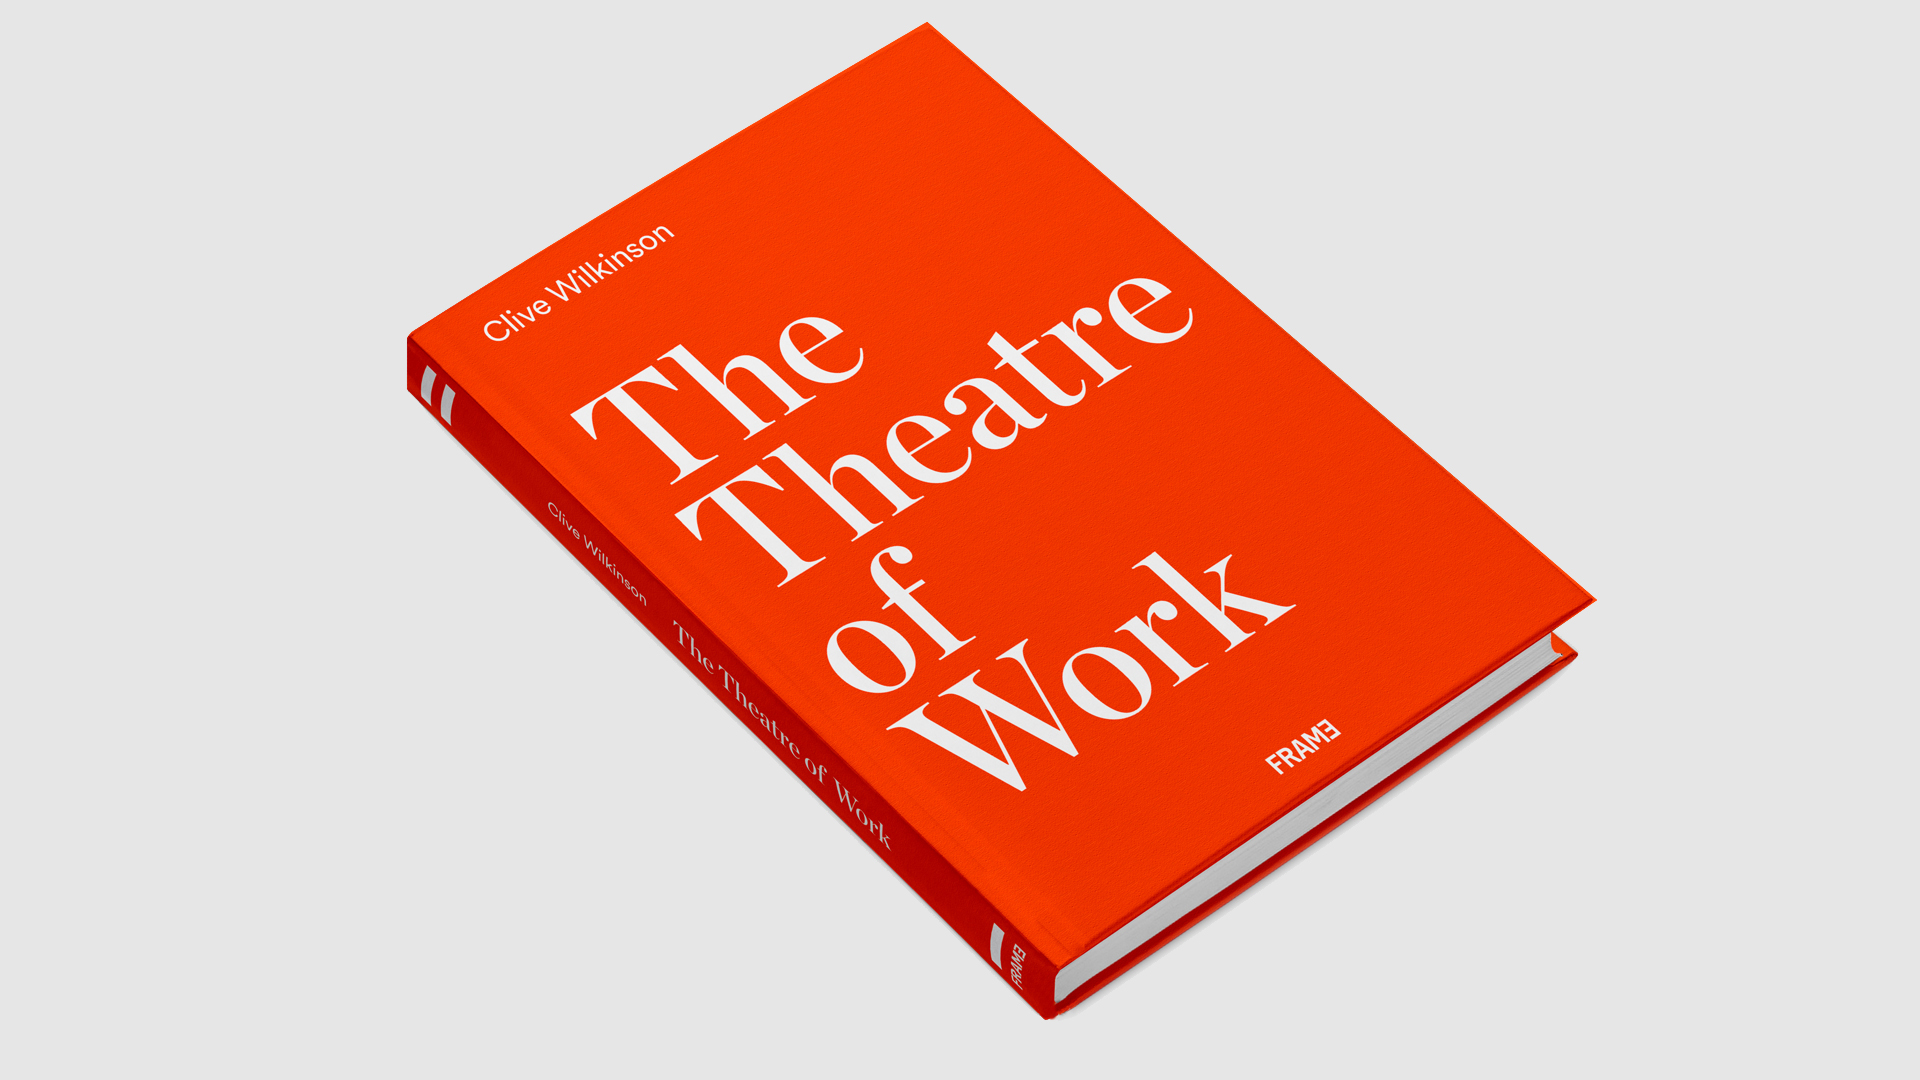 01 The Theatre of Work